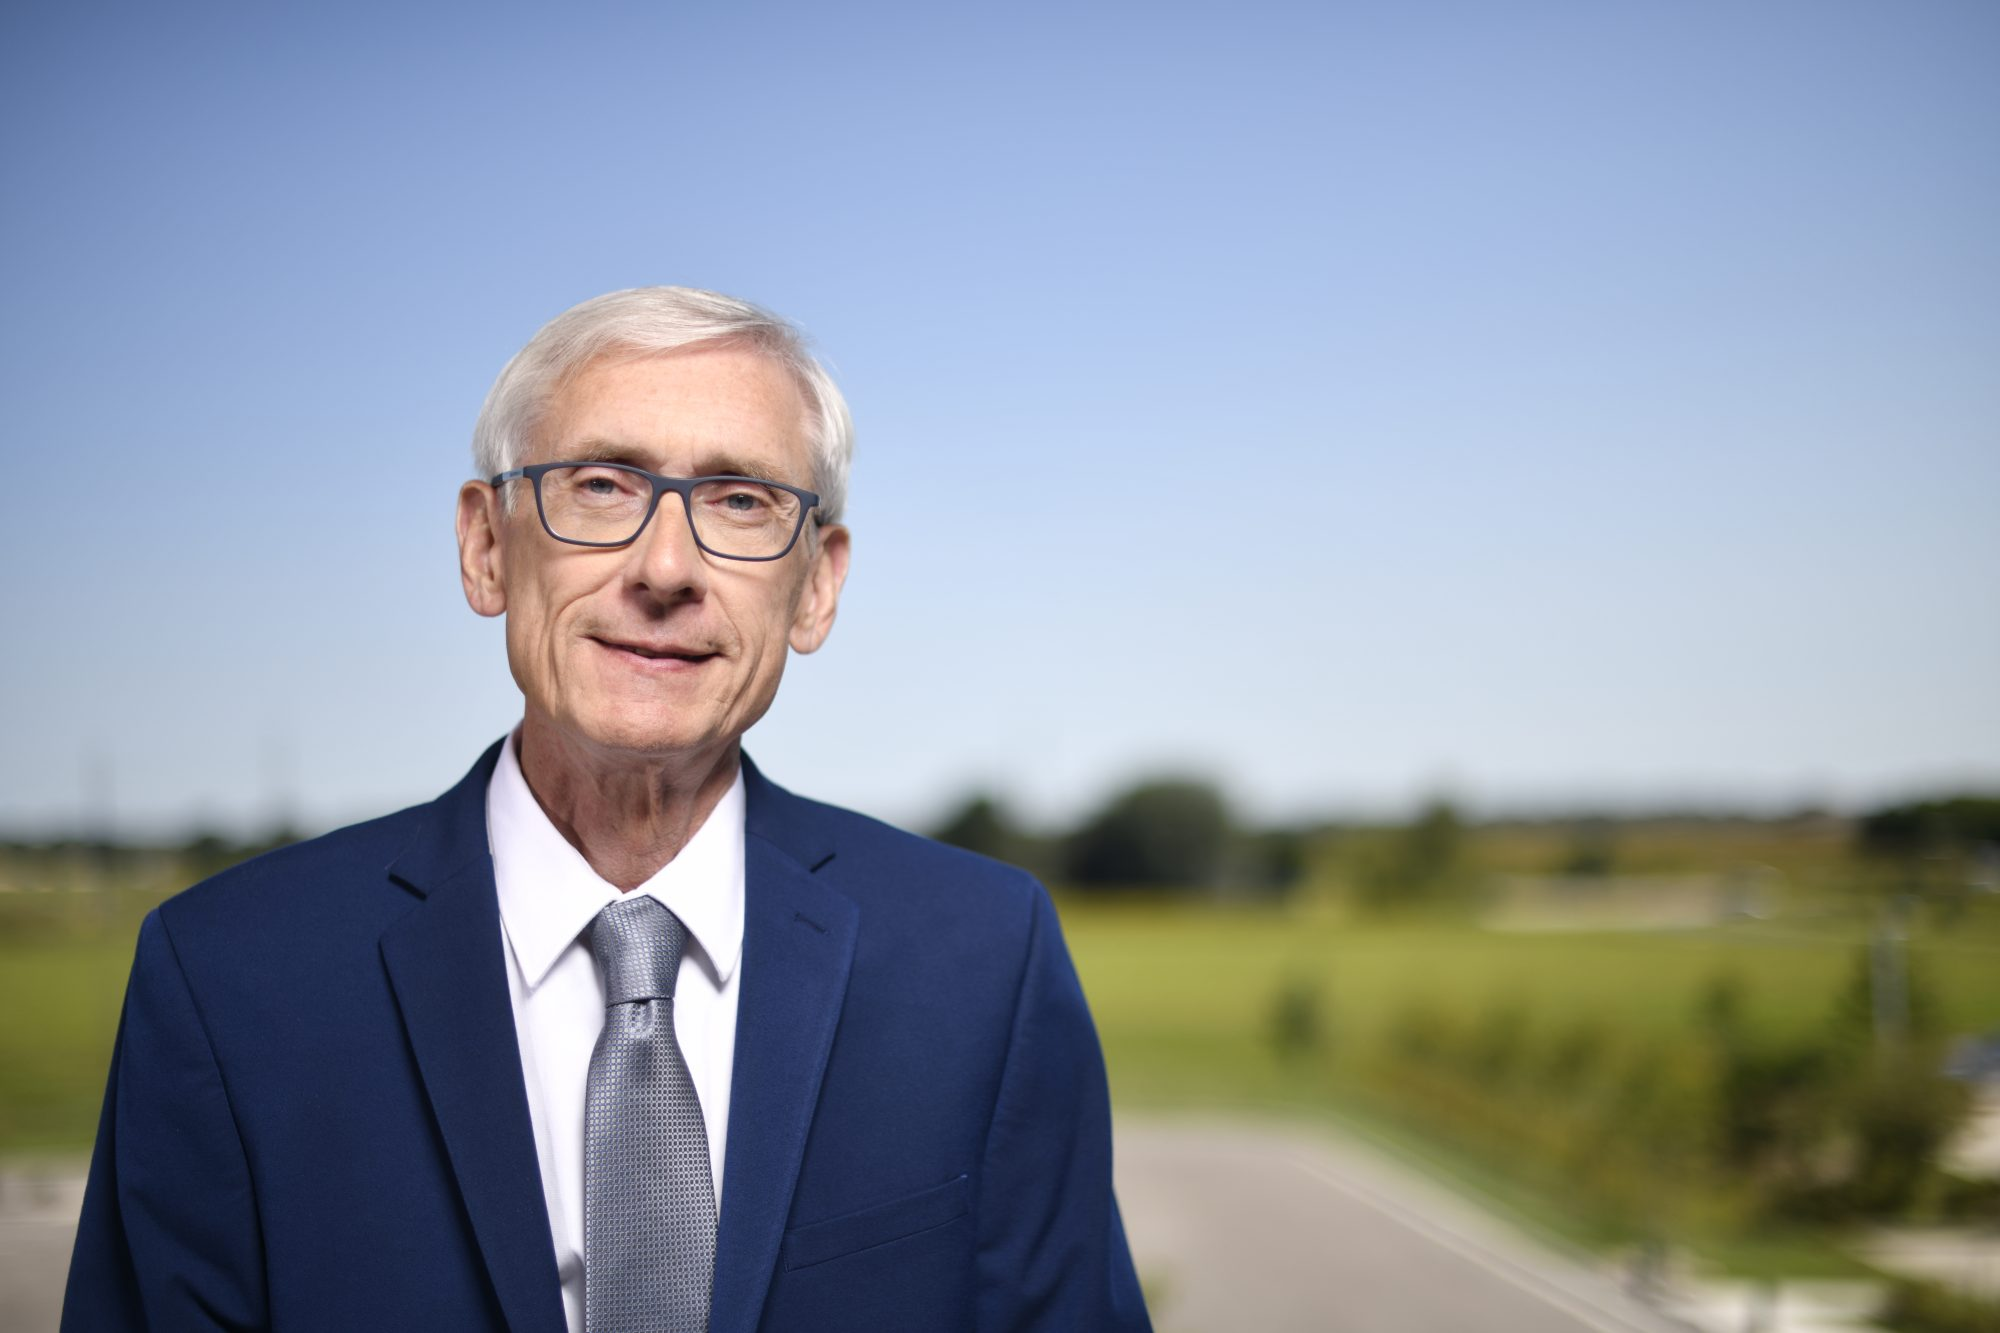 Gov. Evers Signs Executive Order #38 Relating to Clean Energy in Wisconsin